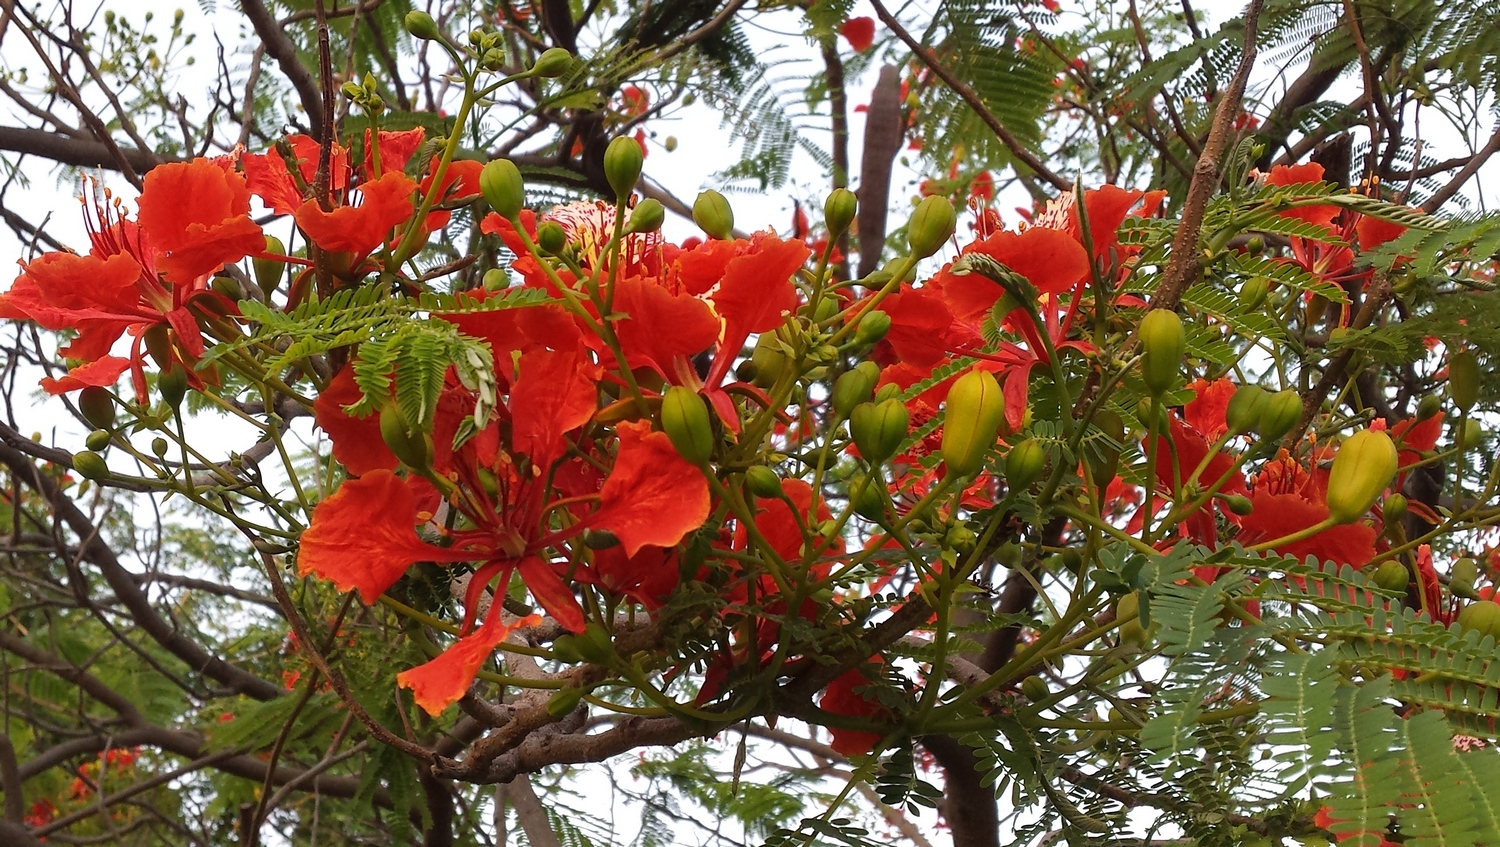 Delonix regia, the flamboyant tree